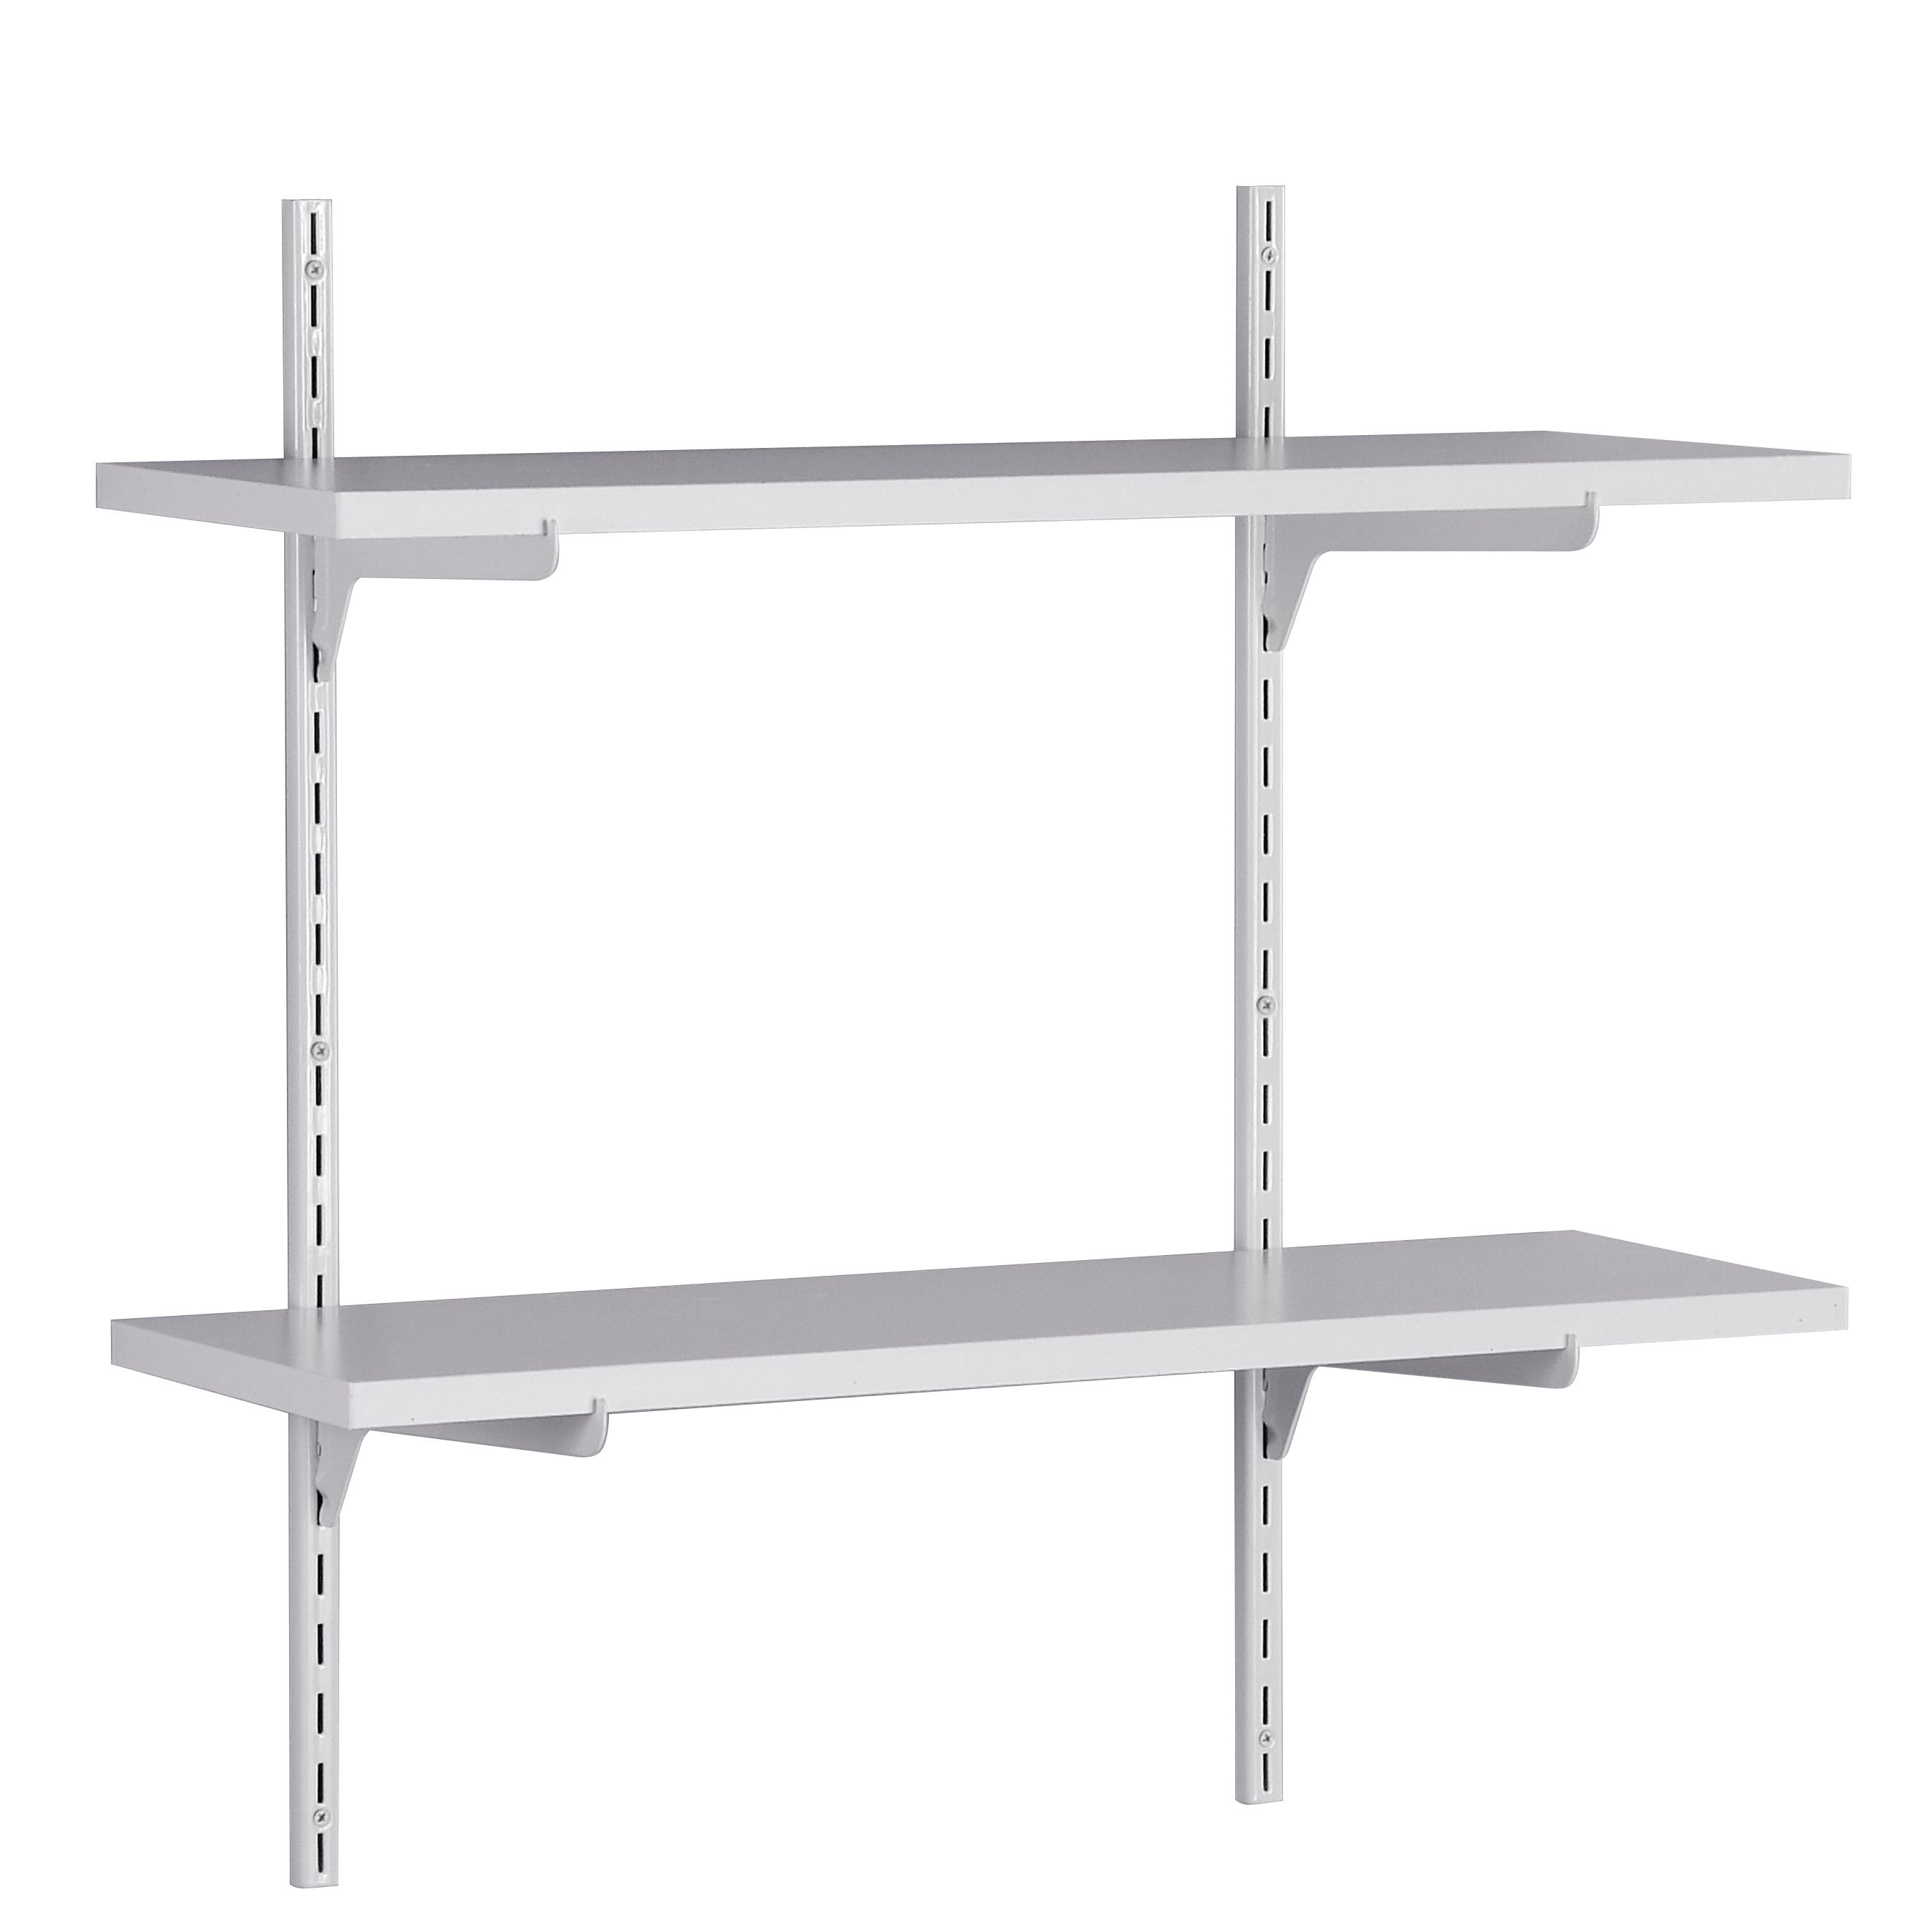 Our Adjustable Two Shelf Kit Is A Simple And Easy Way To Store Miscellaneous Items In Your Garage Shelves Shelving Design Closetmaid